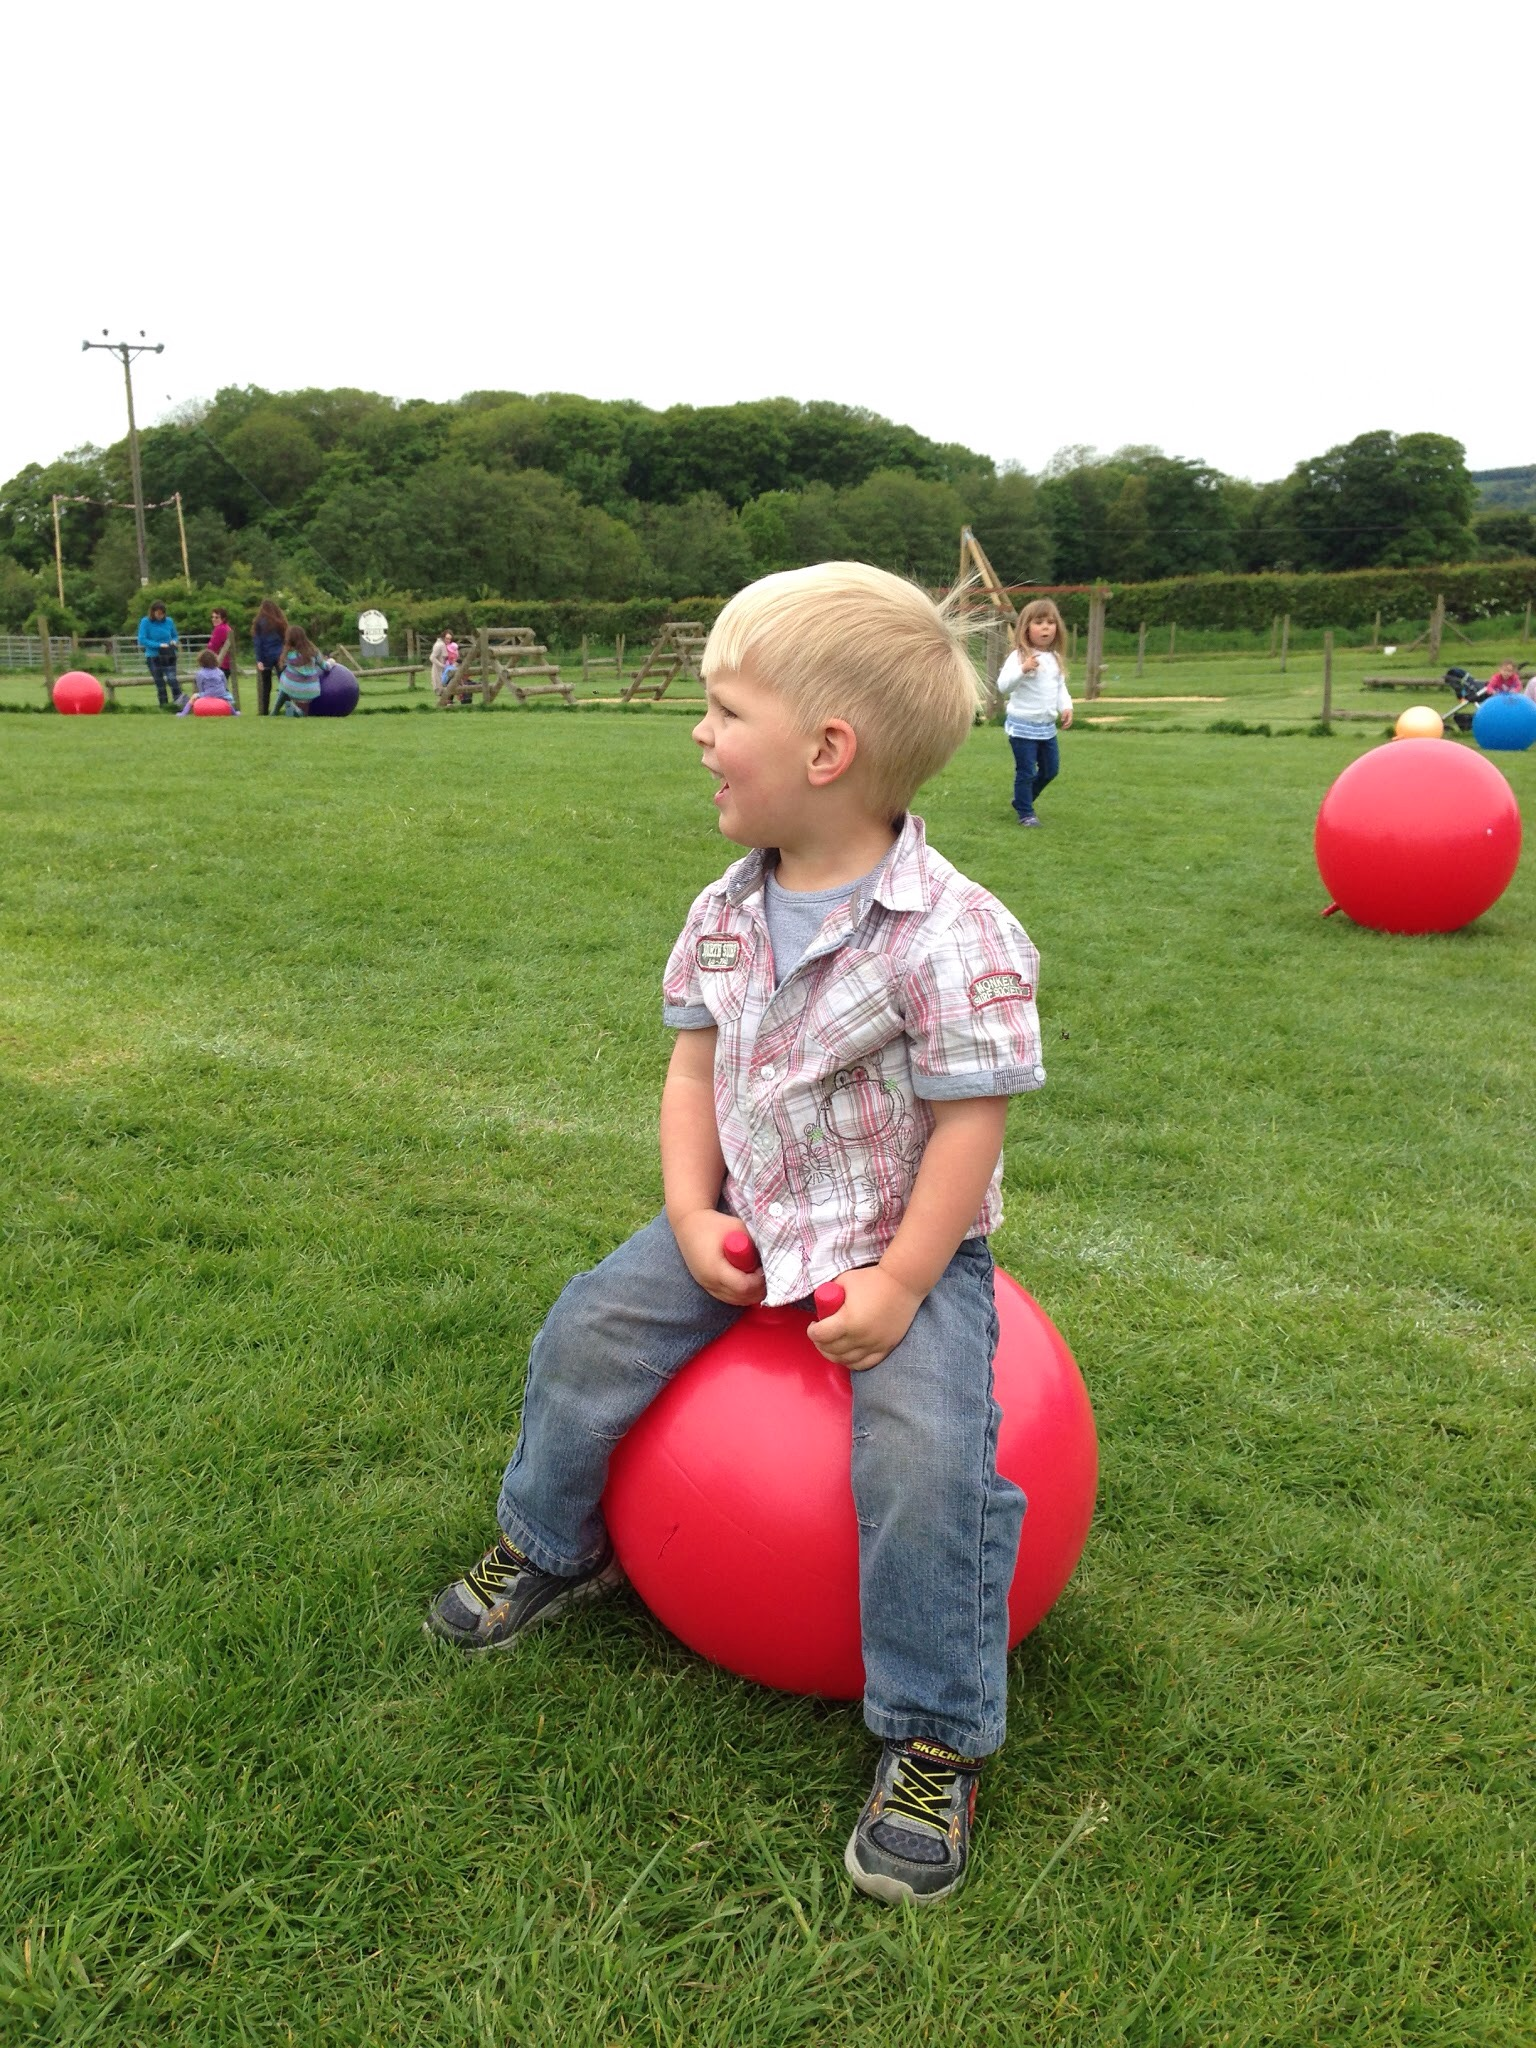 park hall farm oswestry in shropshire has so much to do and is great value for a day out with a toddler